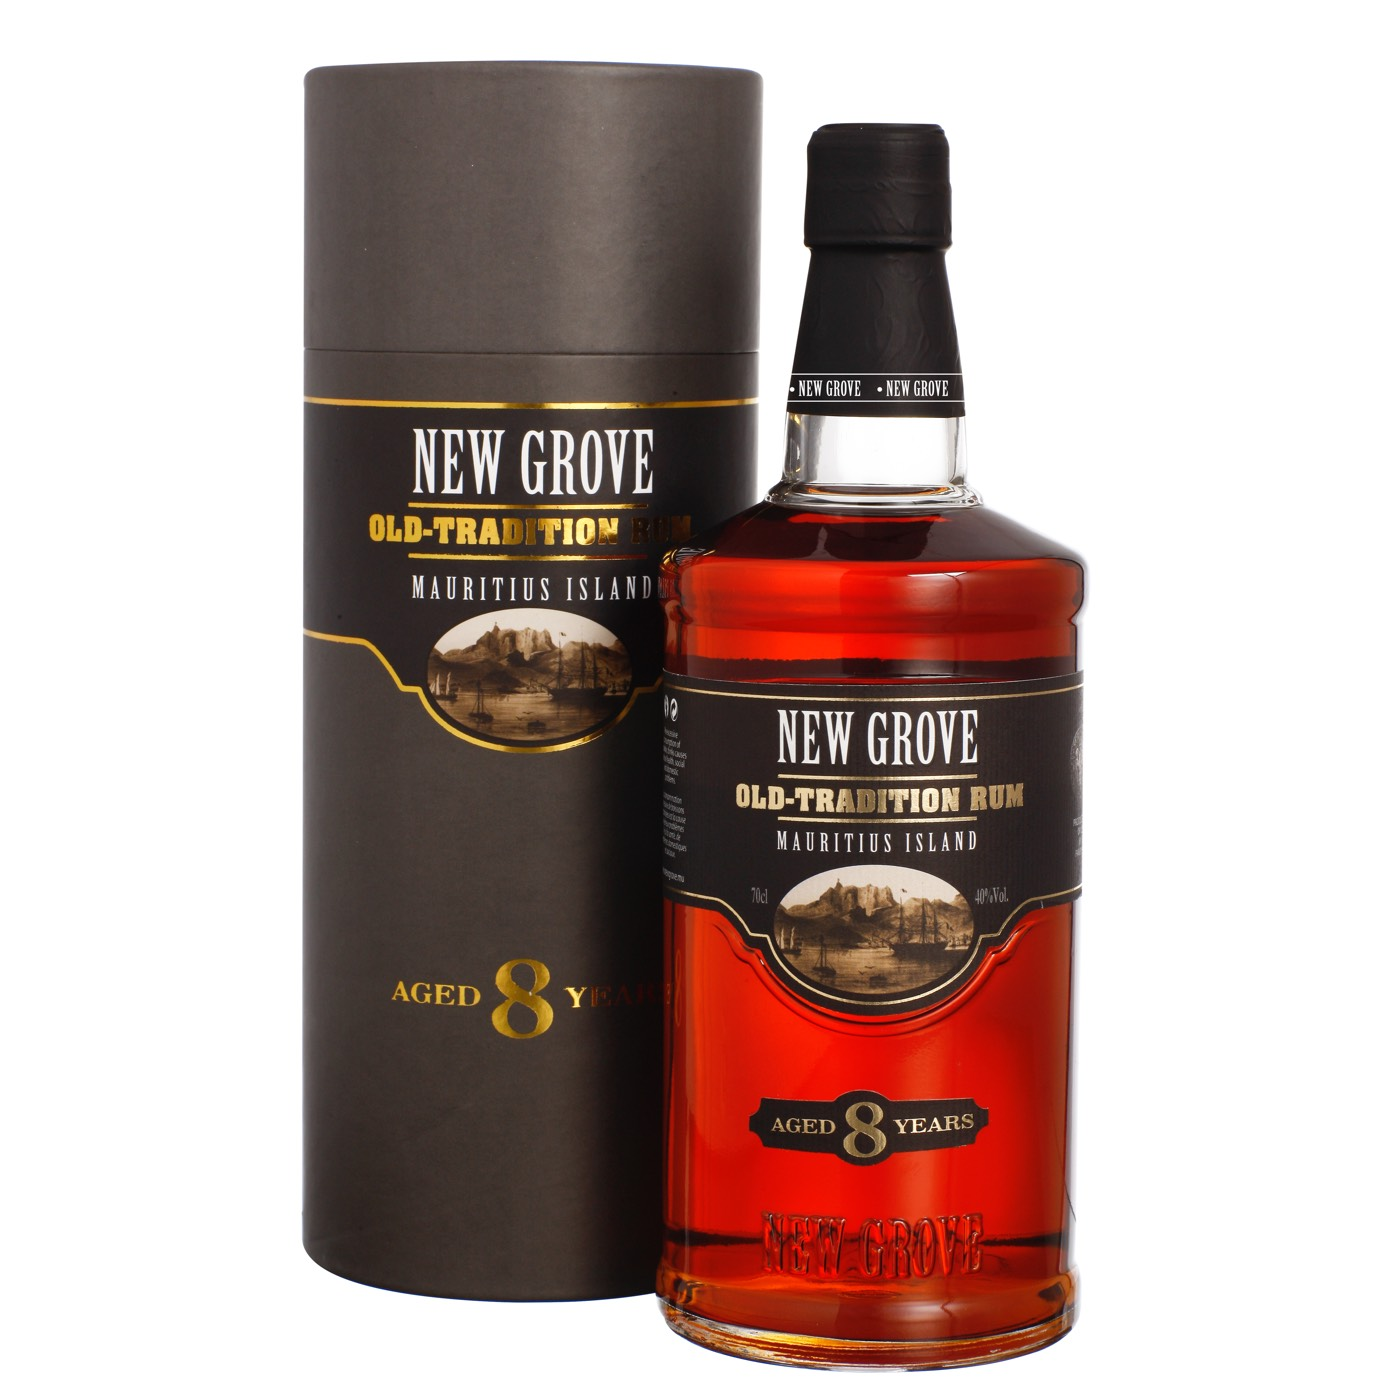 Bottle image of New Grove Old Tradition 8